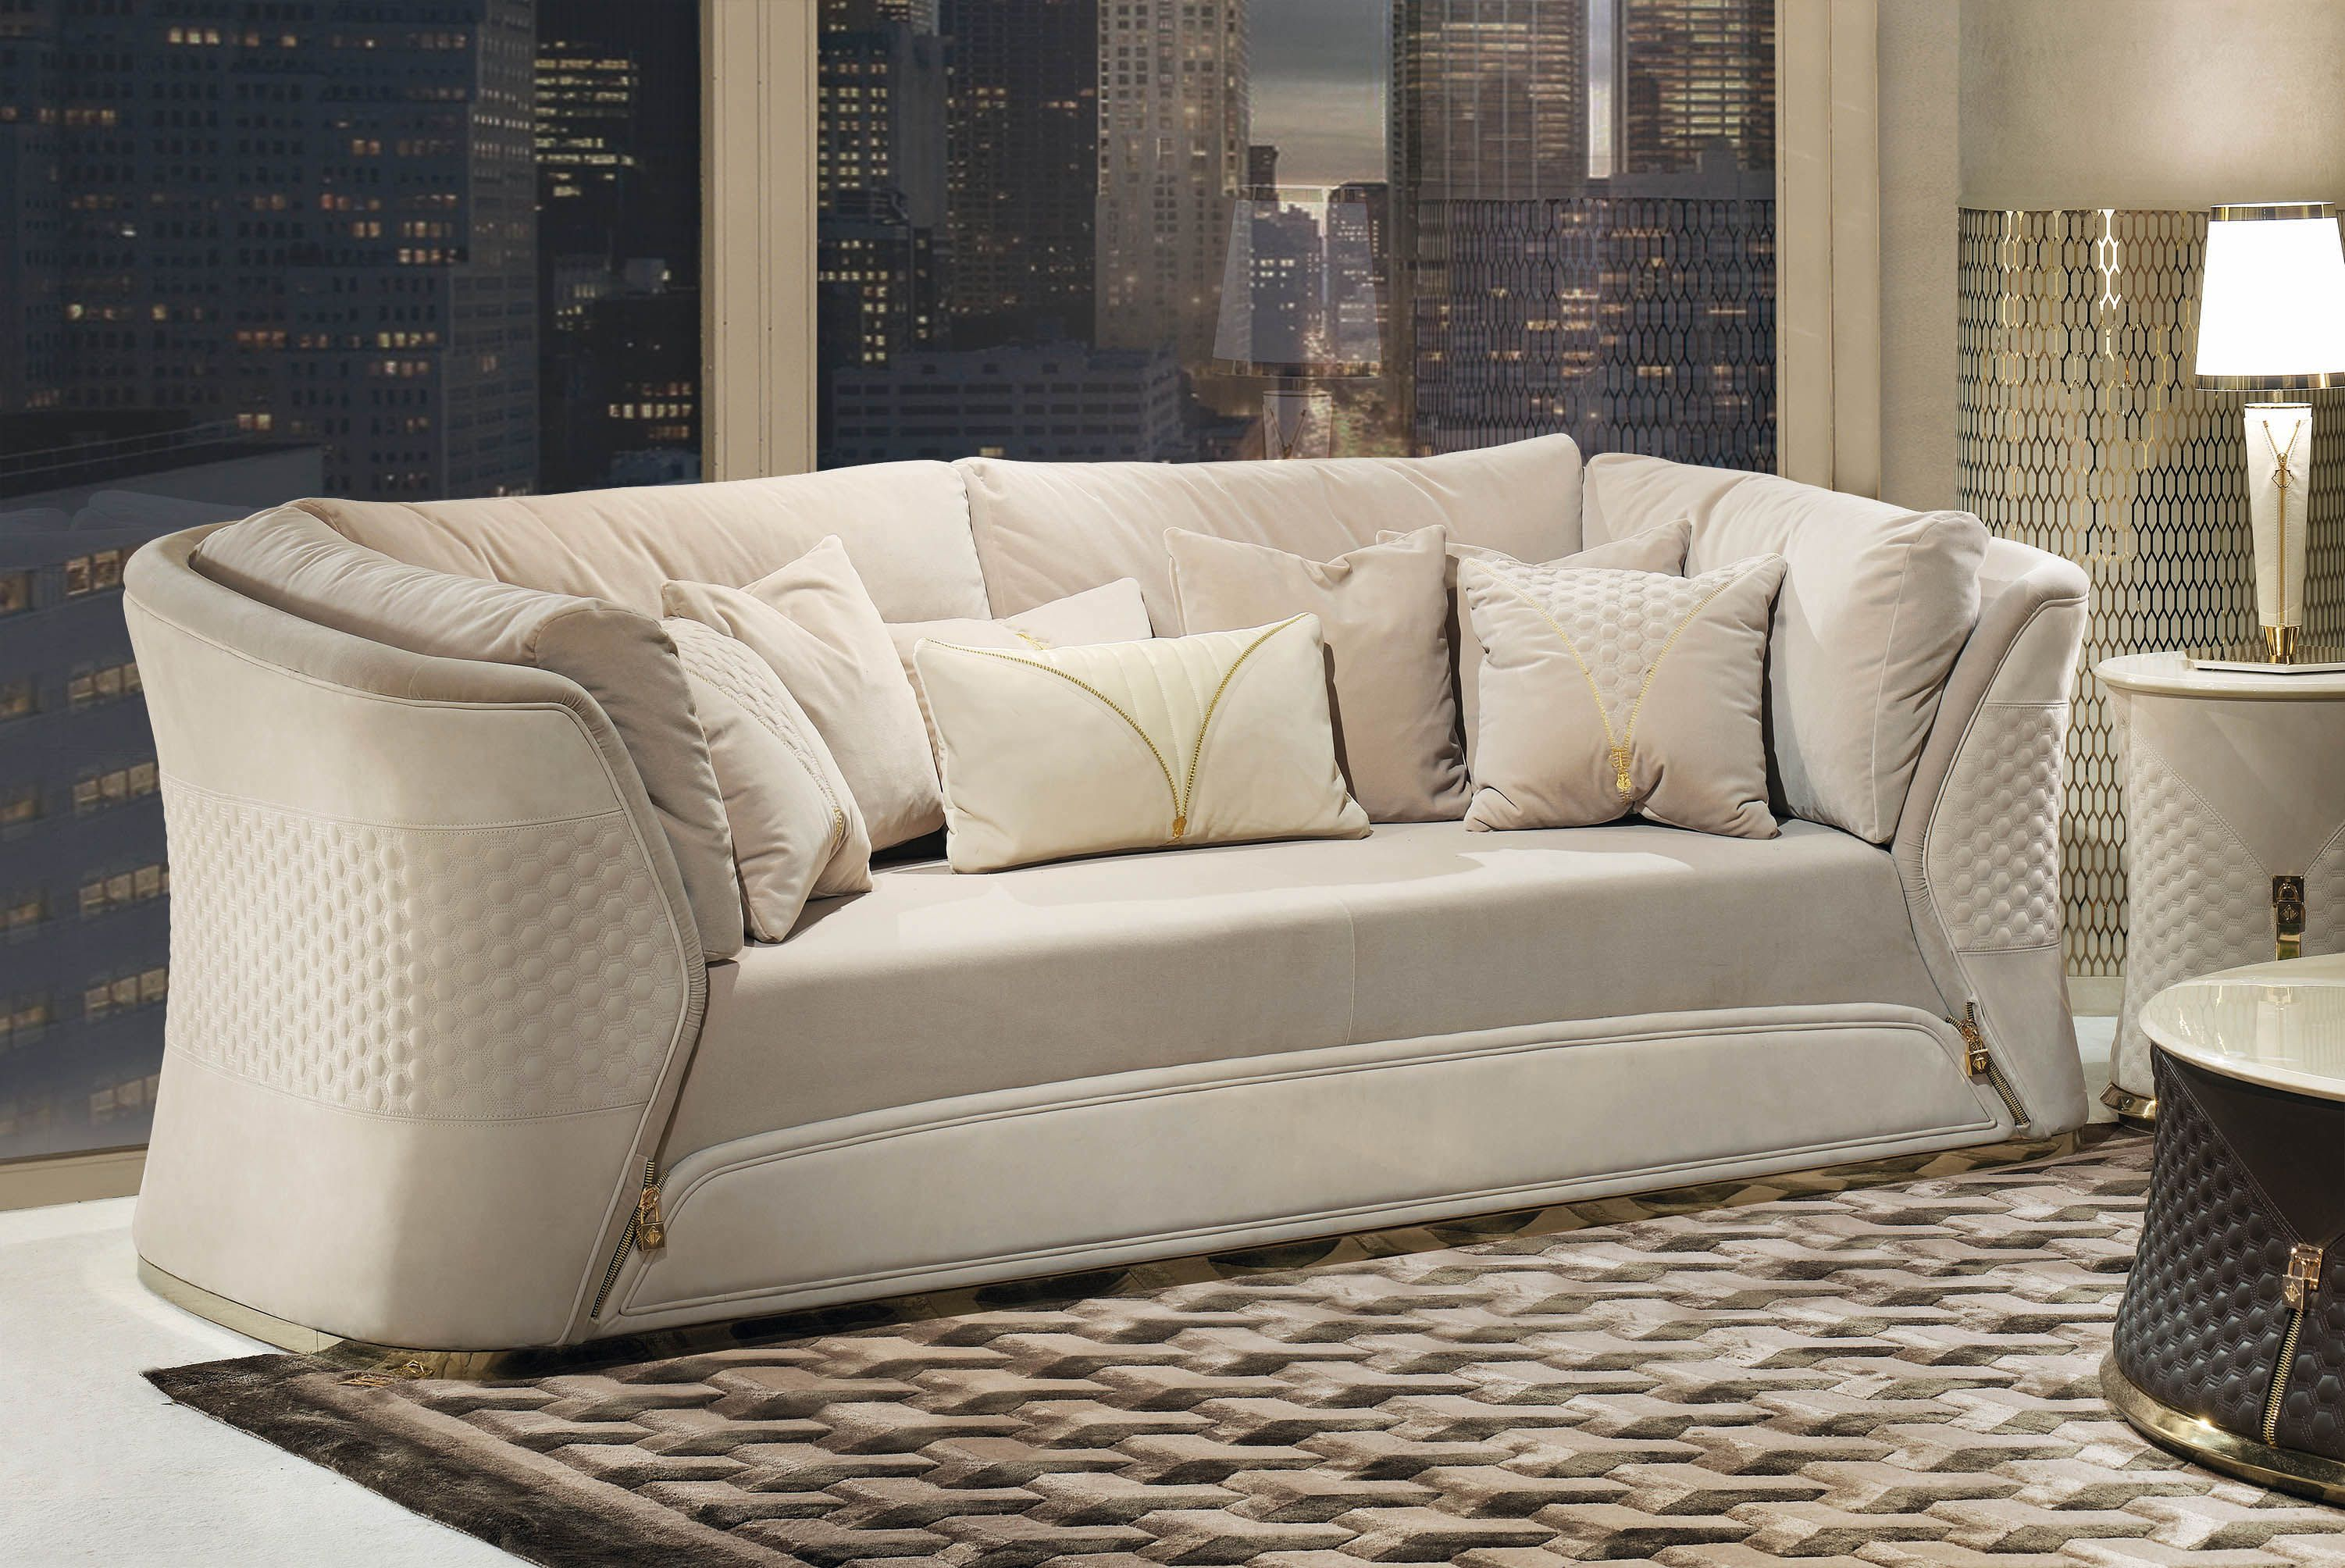 Vogue Collection Www Turri It Luxury Italian Sofa Italian Sofa Designs Italian Furniture Brands Luxury Sofa